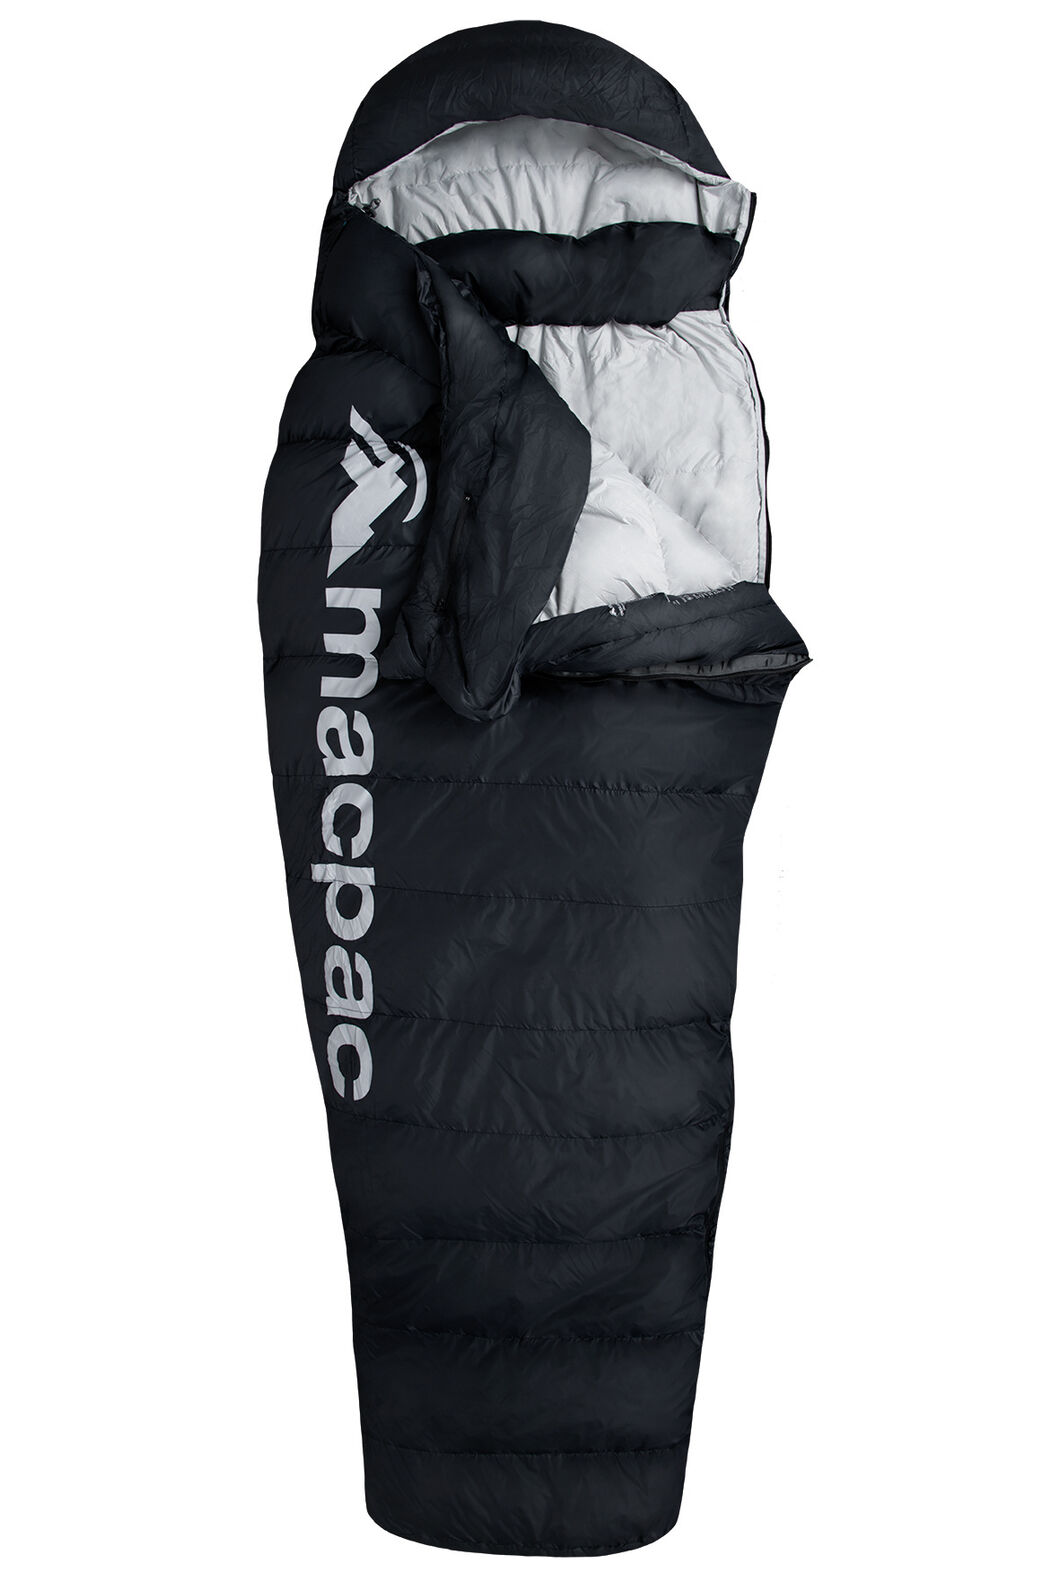 Macpac Overland Down 400 Sleeping Bag - Standard, Black, hi-res